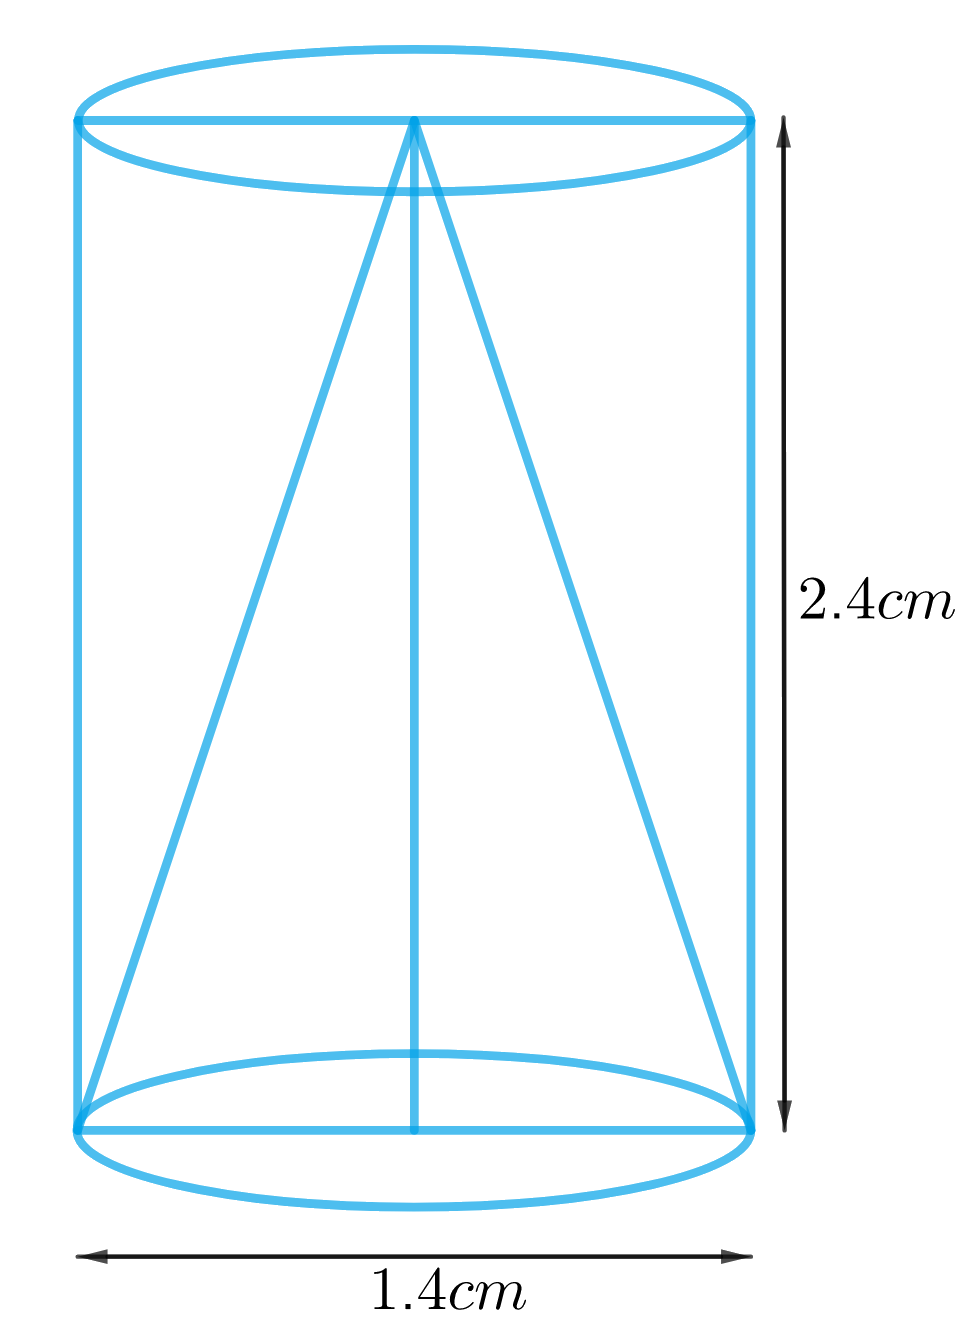 From a solid cylinder whose height is 2.4 cm and diameter 1.4 cm, a conical cavity of the same height and same diameter is hollowed out. Find the total surface area of the remaining solid to the nearest cm2.